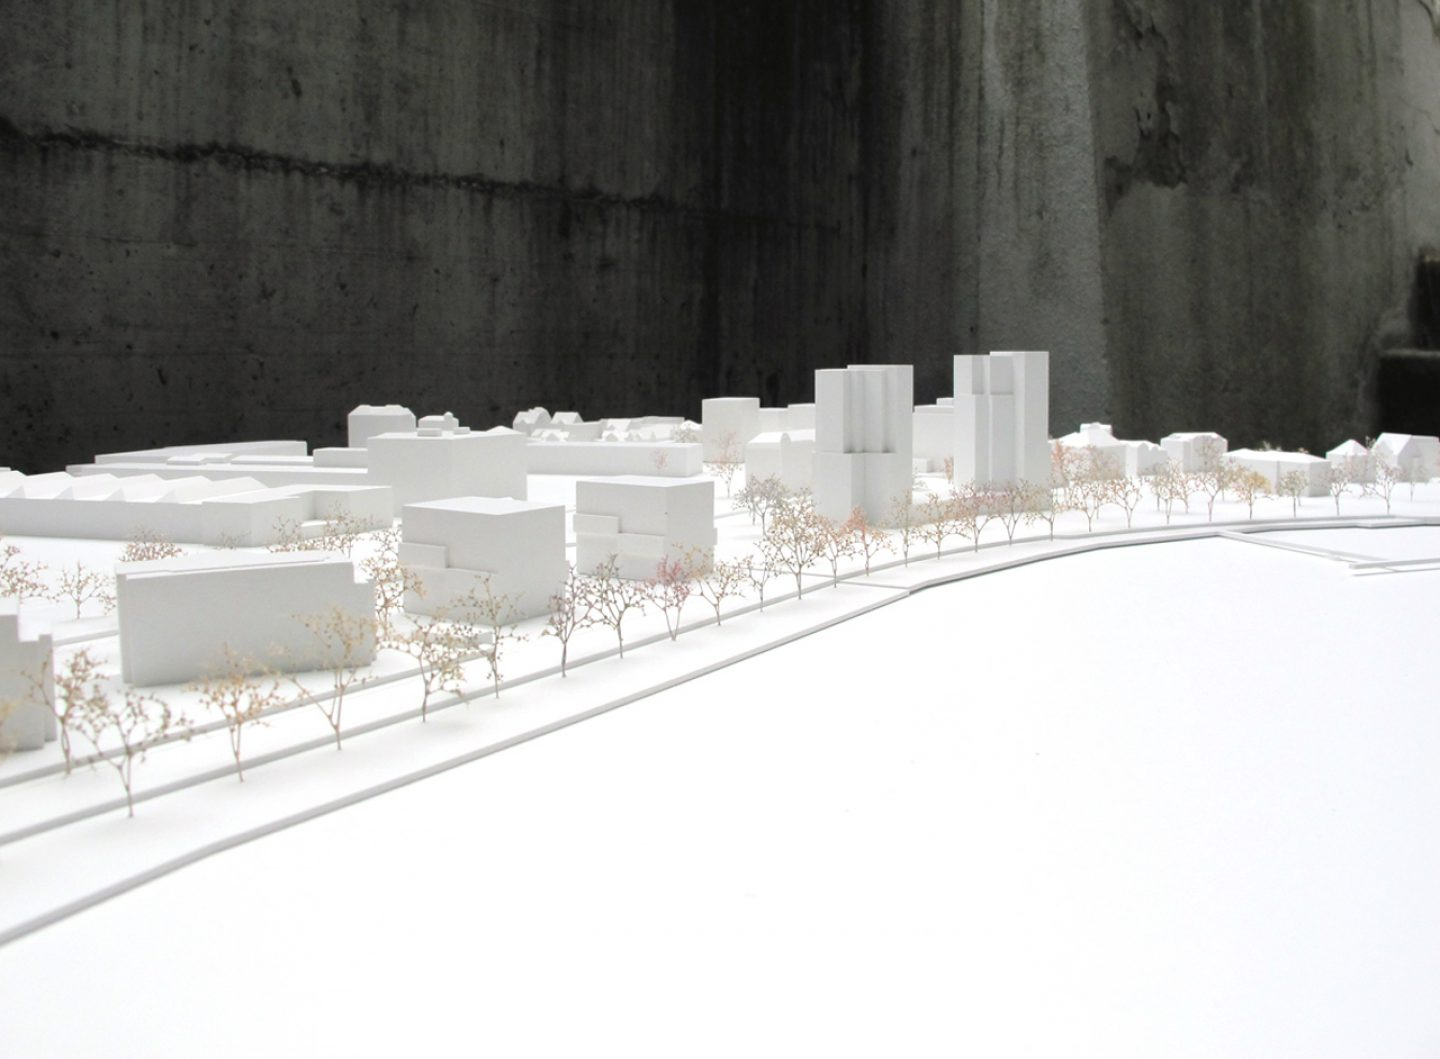 meierhug_architects_02